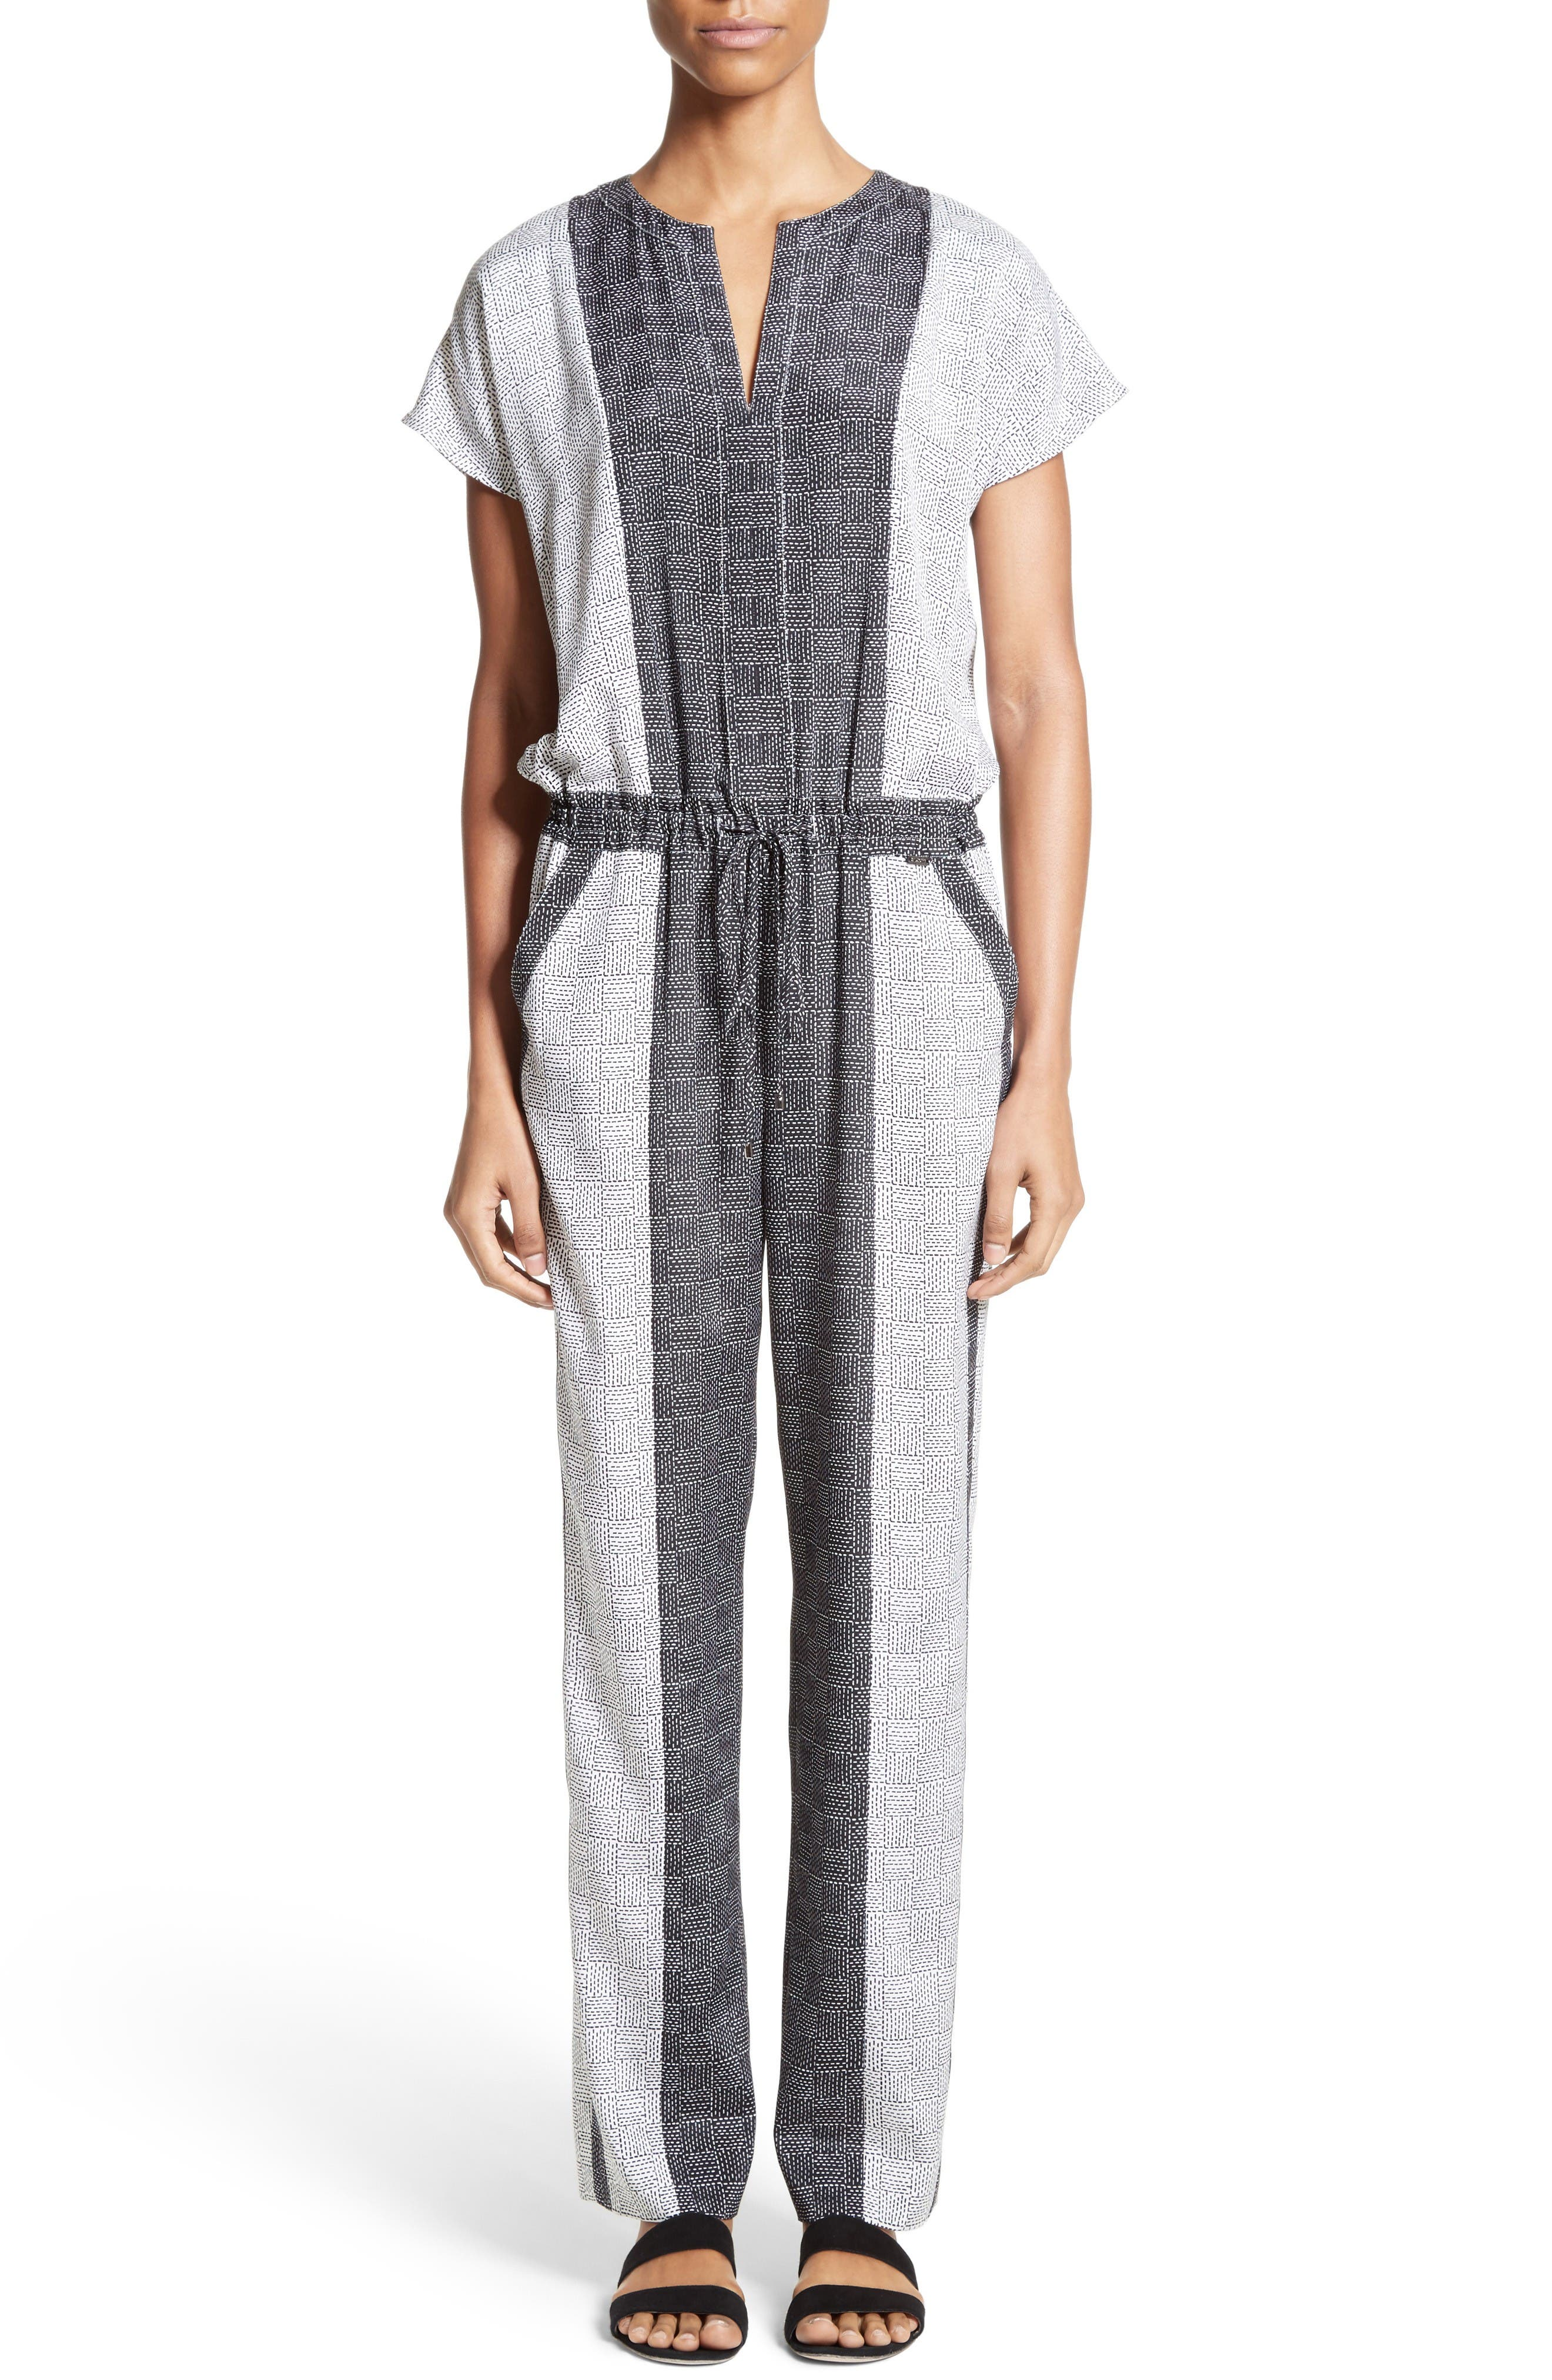 Stitch Print Stretch Silk Jumpsuit,                             Main thumbnail 1, color,                             Bianco/ Caviar